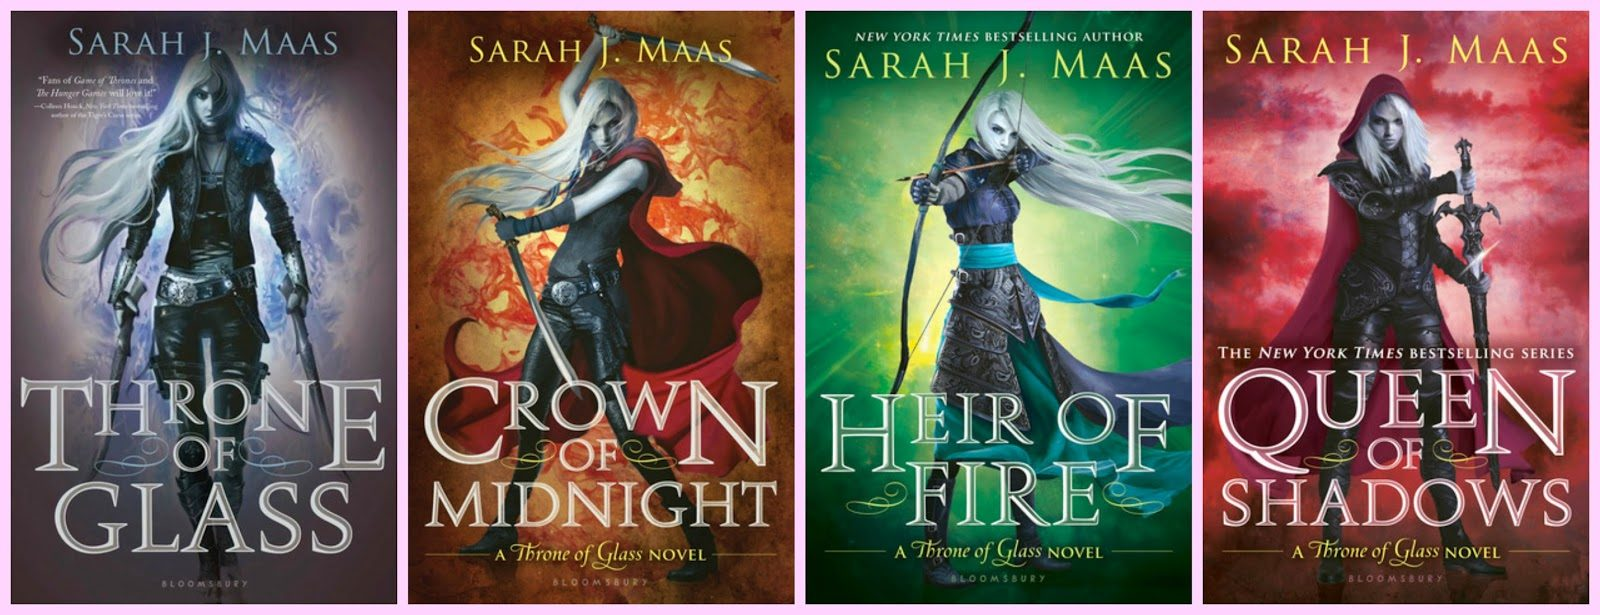 Coverbattlethroneofglass_2-1